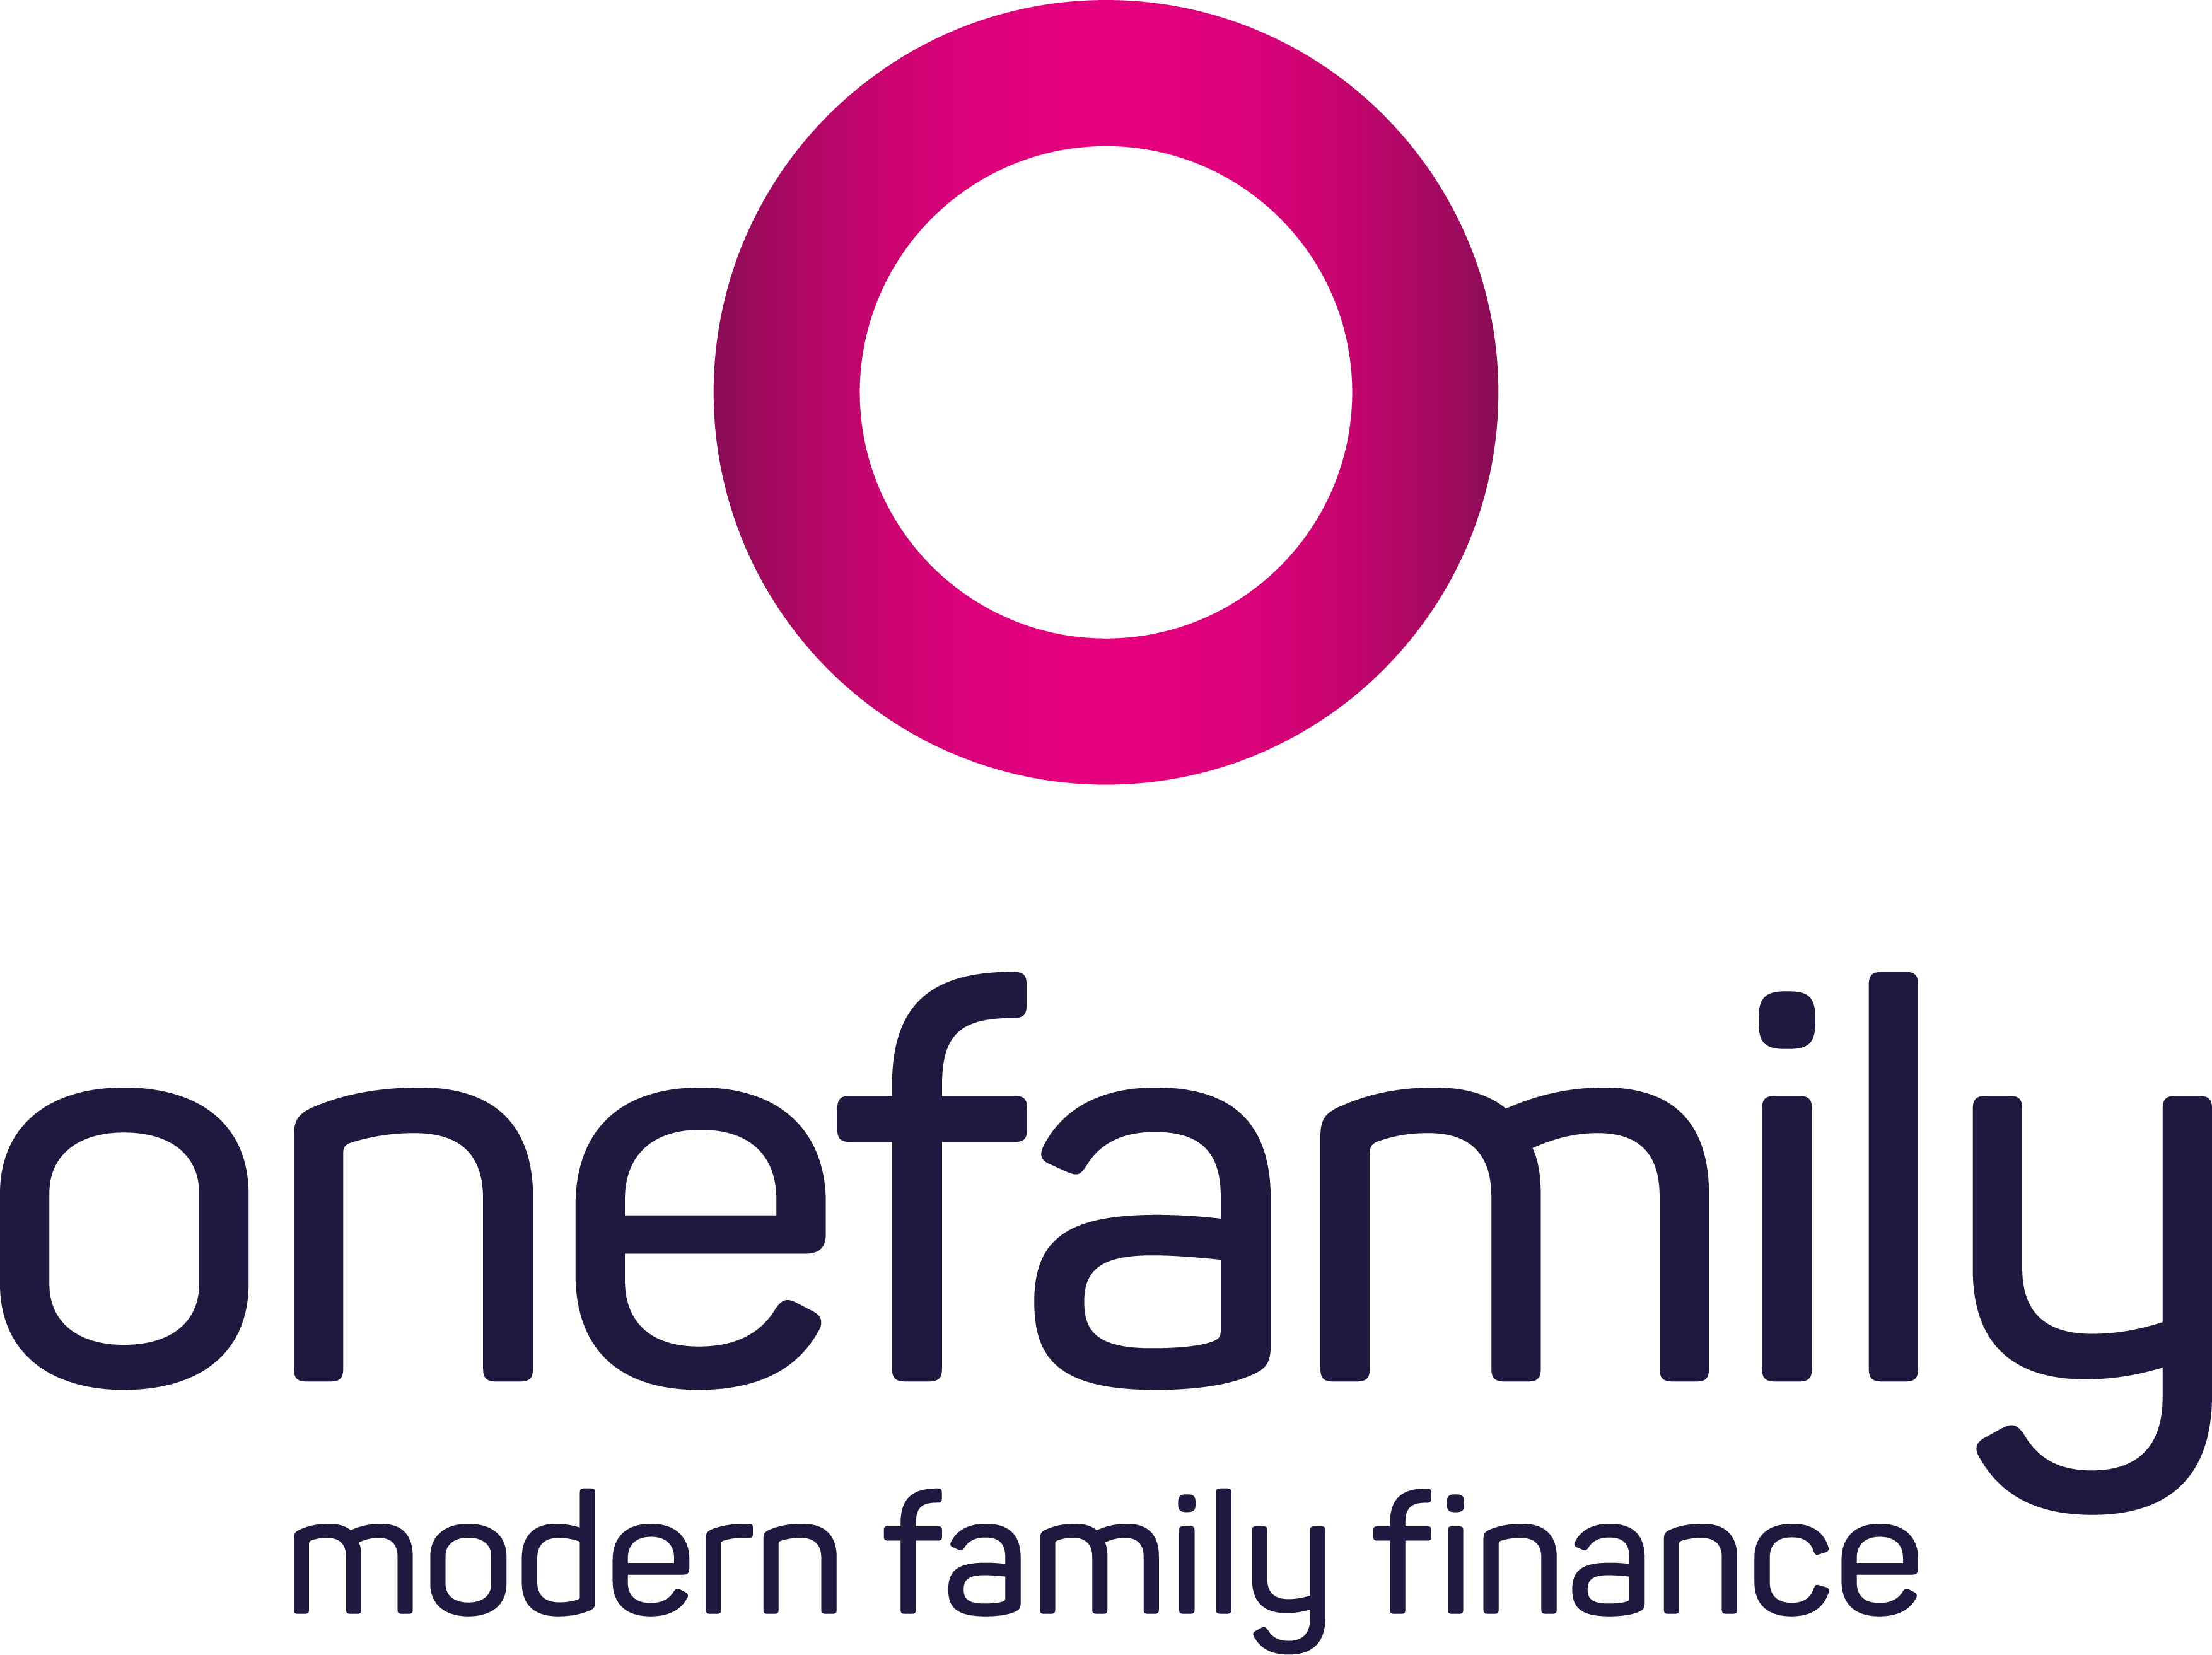 one family over 50s life insurance